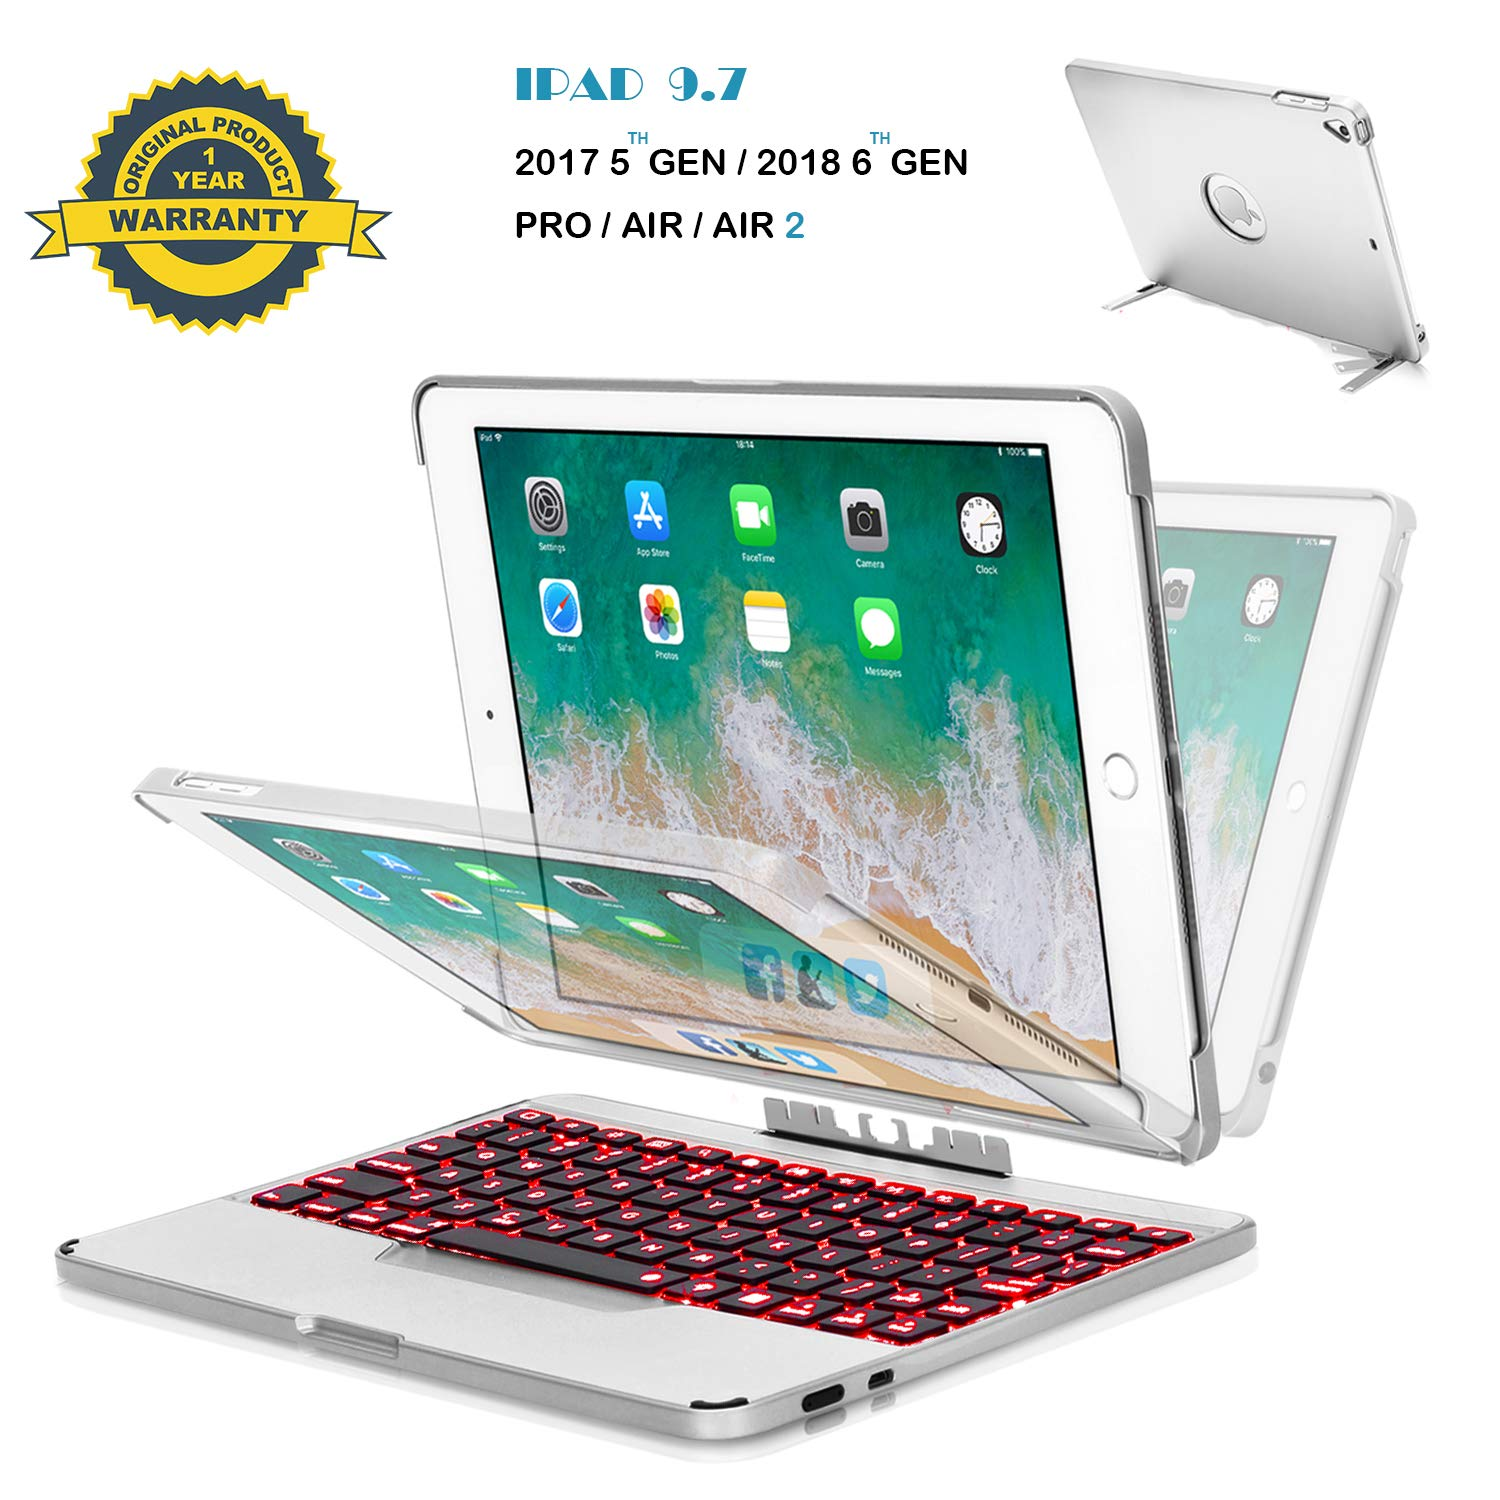 Naxxlab iPad Keyboard Case for iPad 6th/iPad 5th/Air/Air2/Pro 9.7 Detachable Aluminum Keyboard Case with 7 Colors Backlit, iPad case with Standing Bracket 2 in 1 【12 Month Warranty】